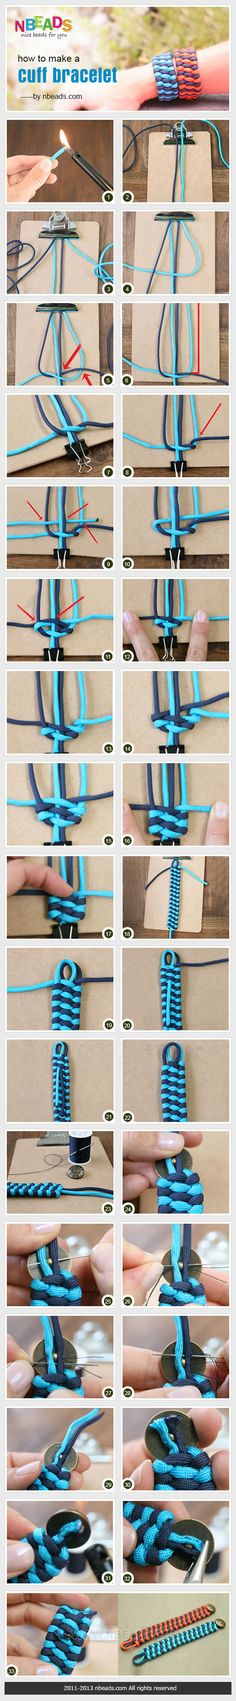 How to Make A Cuff Bracelet diy make bracelet